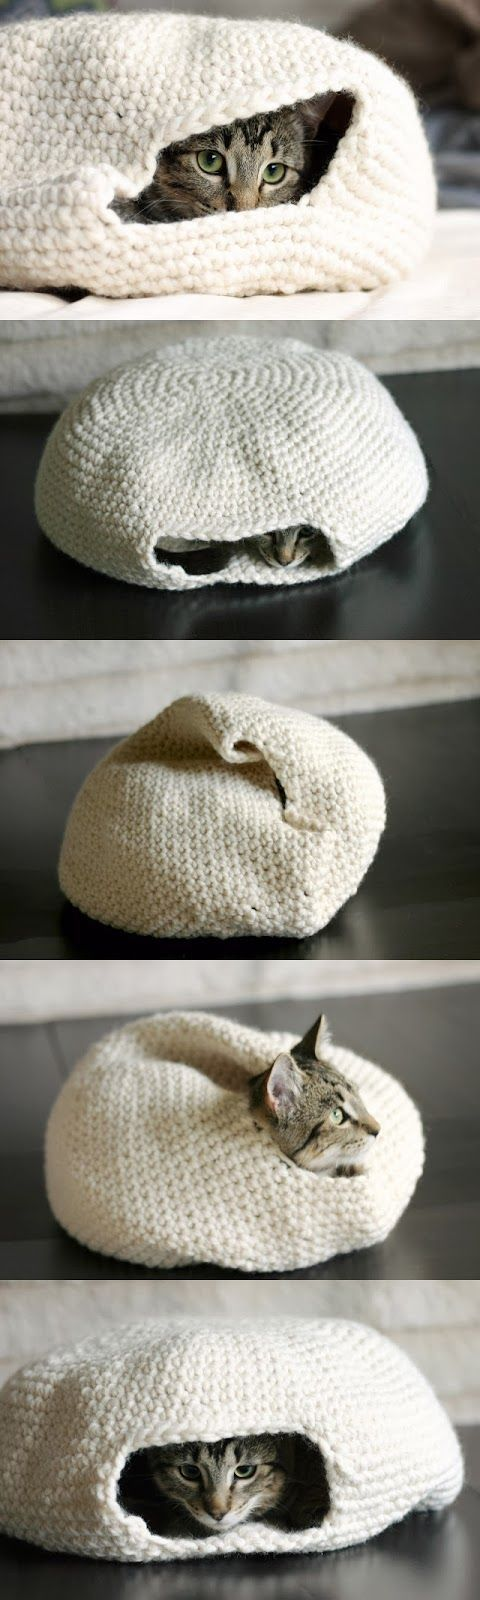 crochet cat Nest (I want one for my 4-lb Chihuahua)  The pattern is free you need to click on the link for it under the pictures on the site, that will take you to a translated page. It is a safe link.